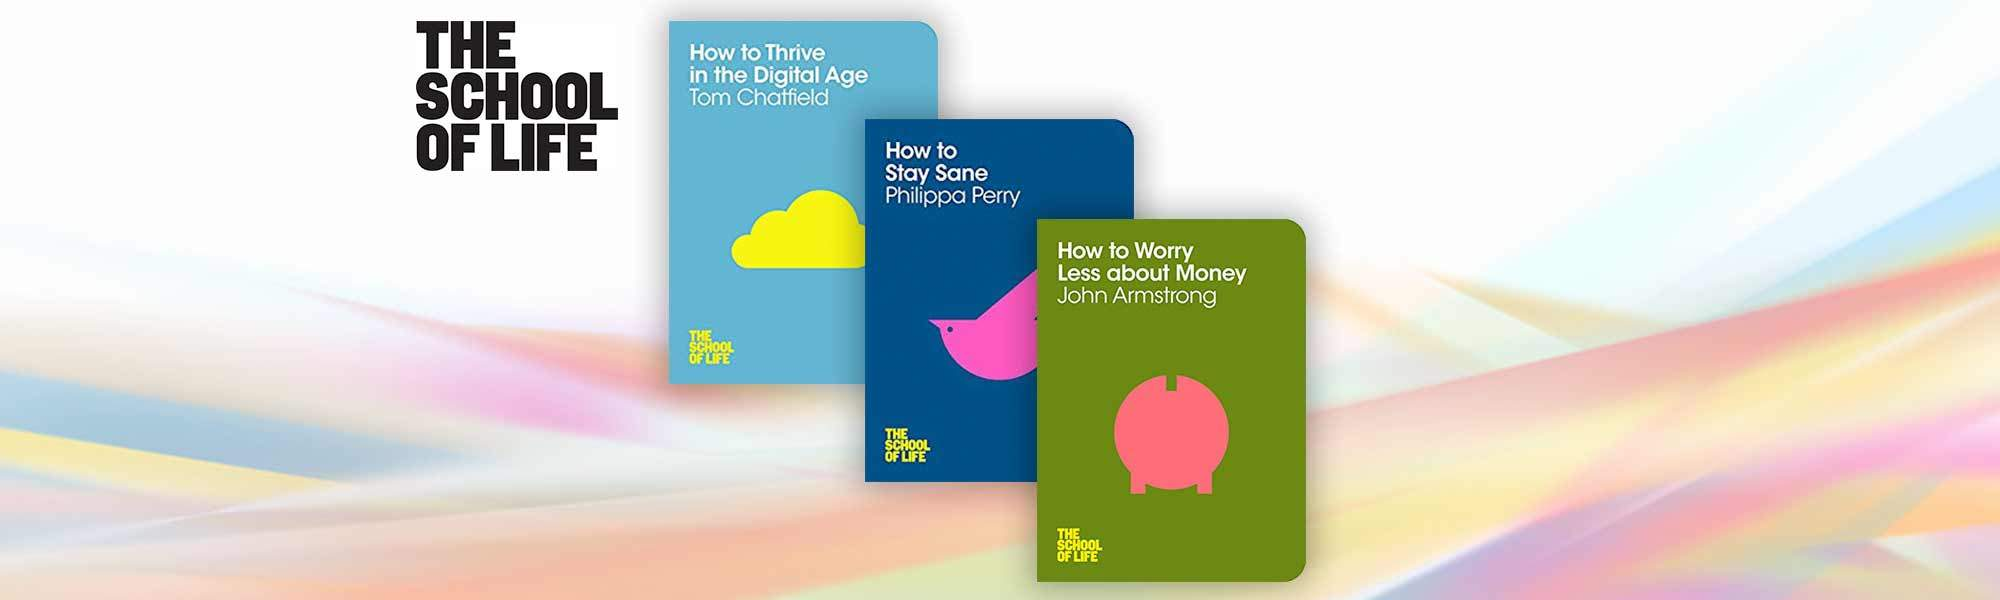 School of Life - How to    Collection - 3 Books, 83% off